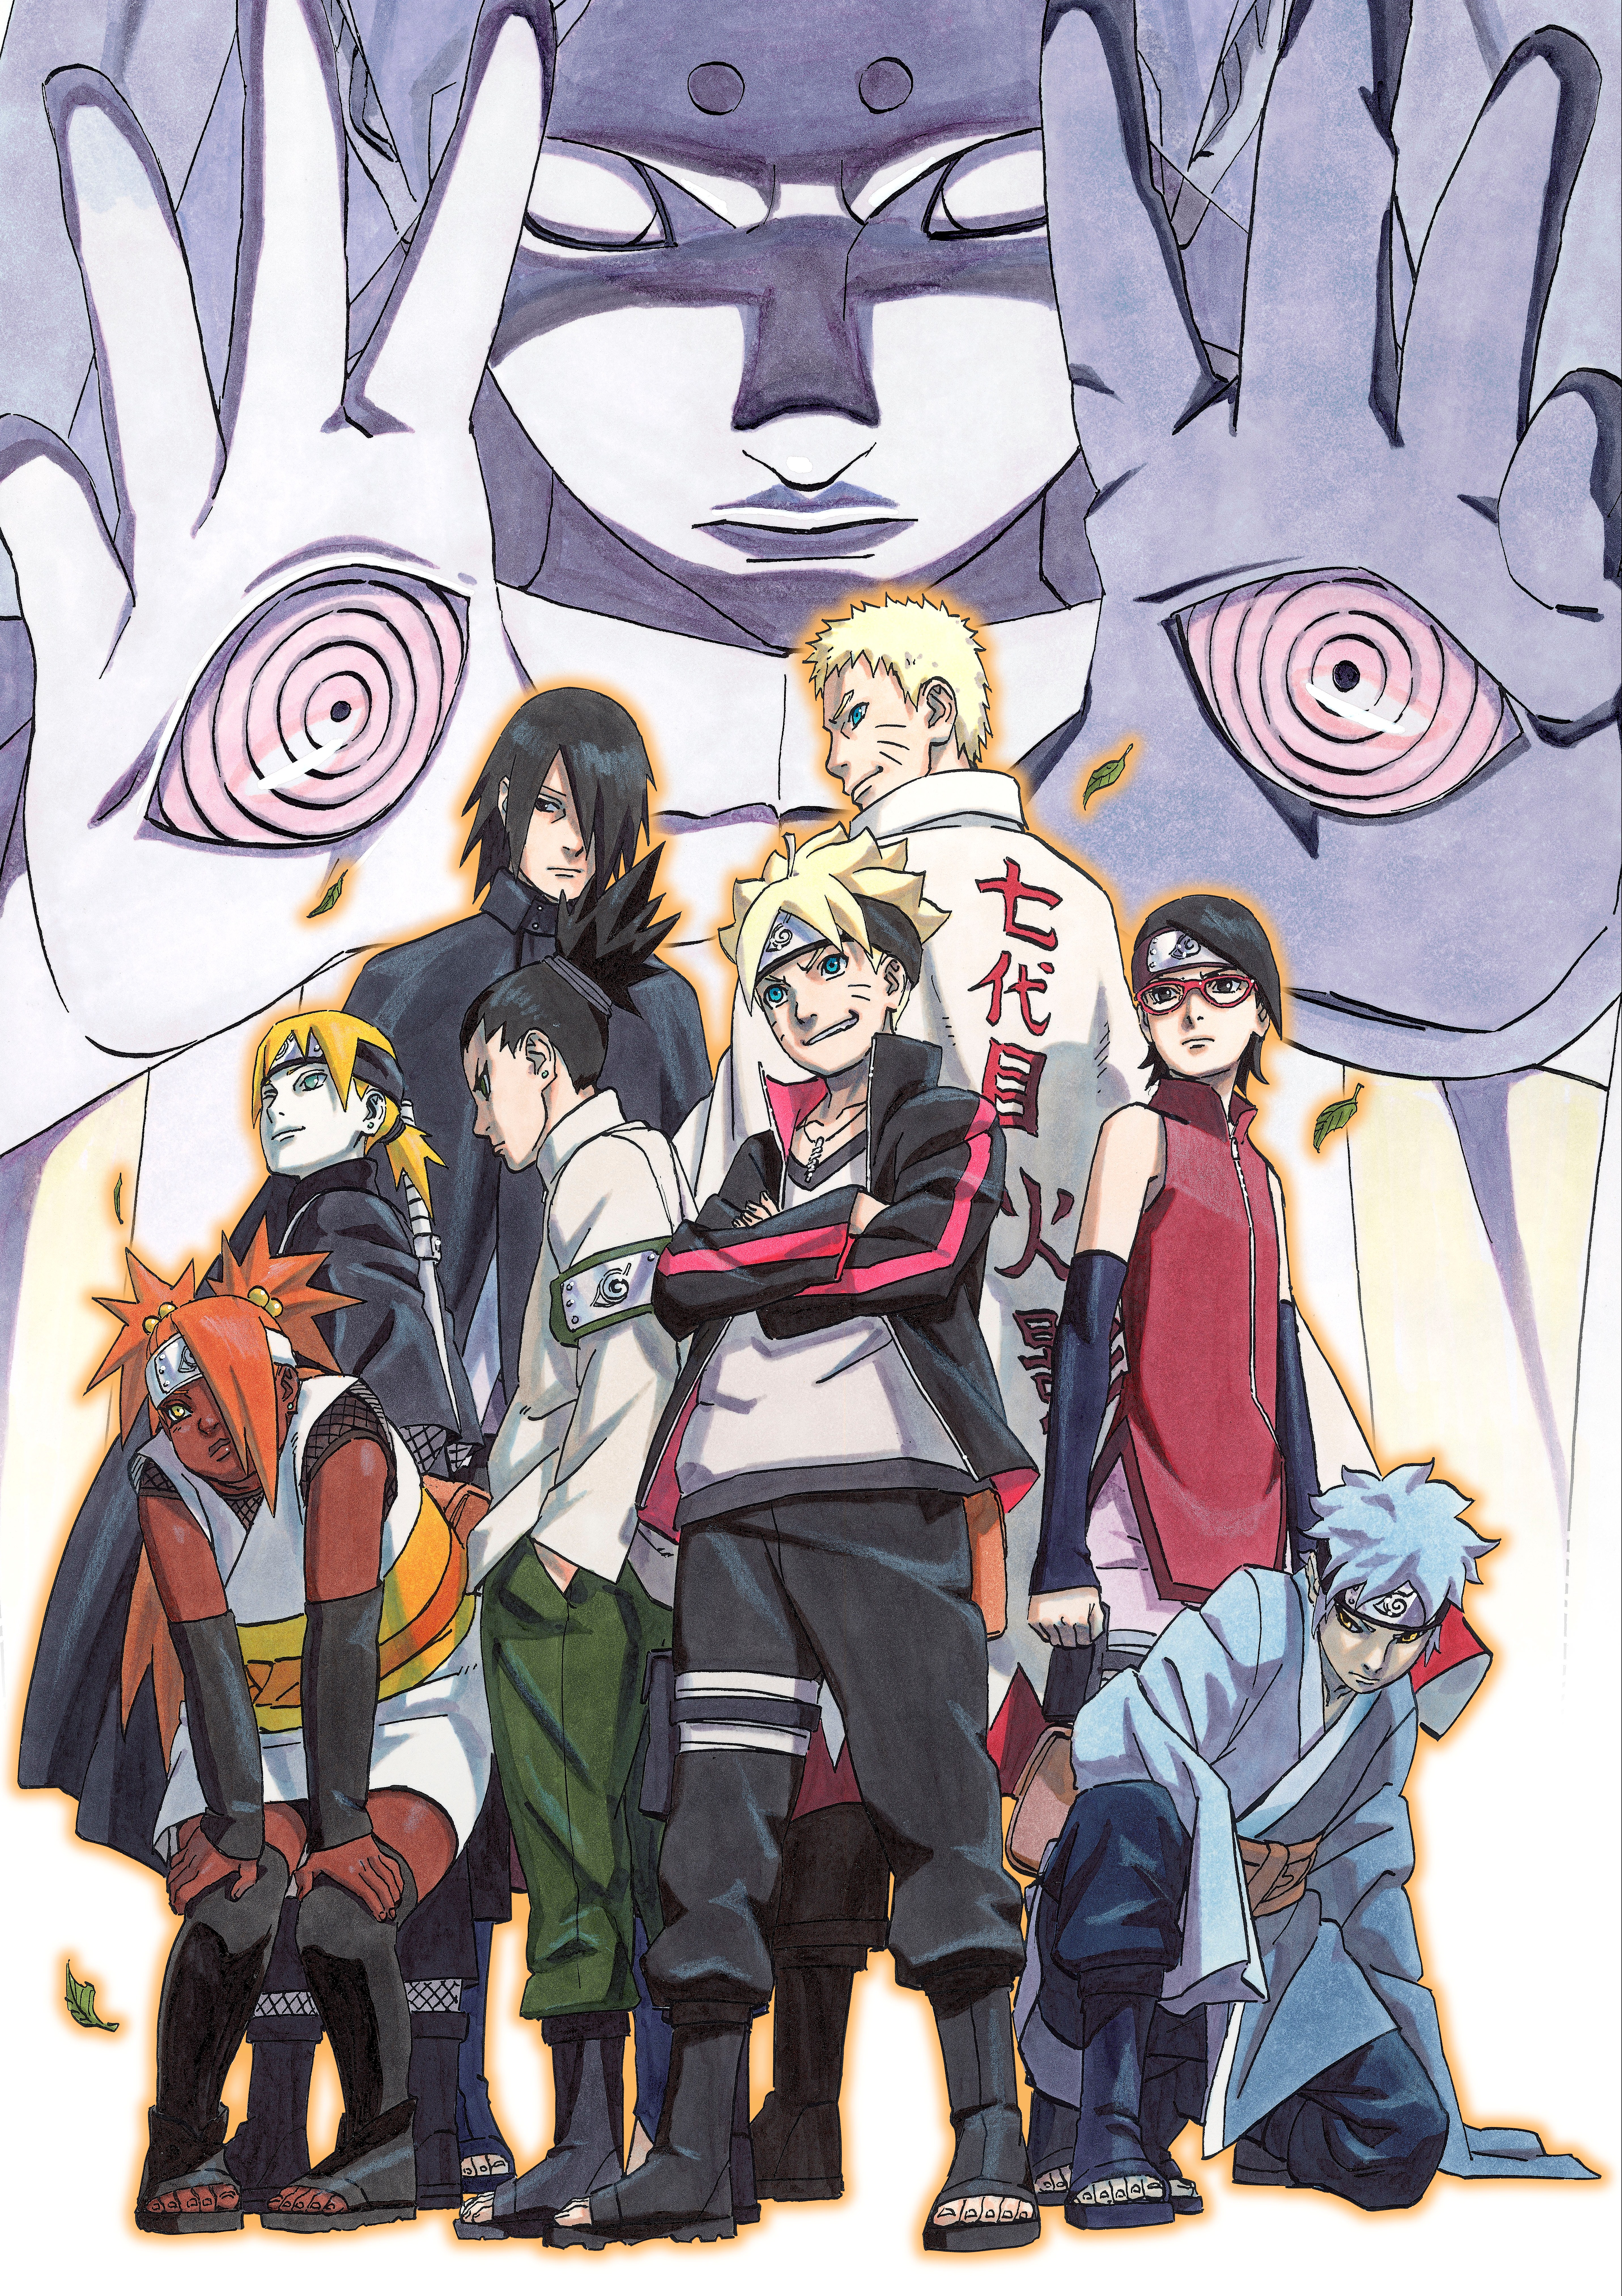 Boruto Naruto the Movie Promo Art